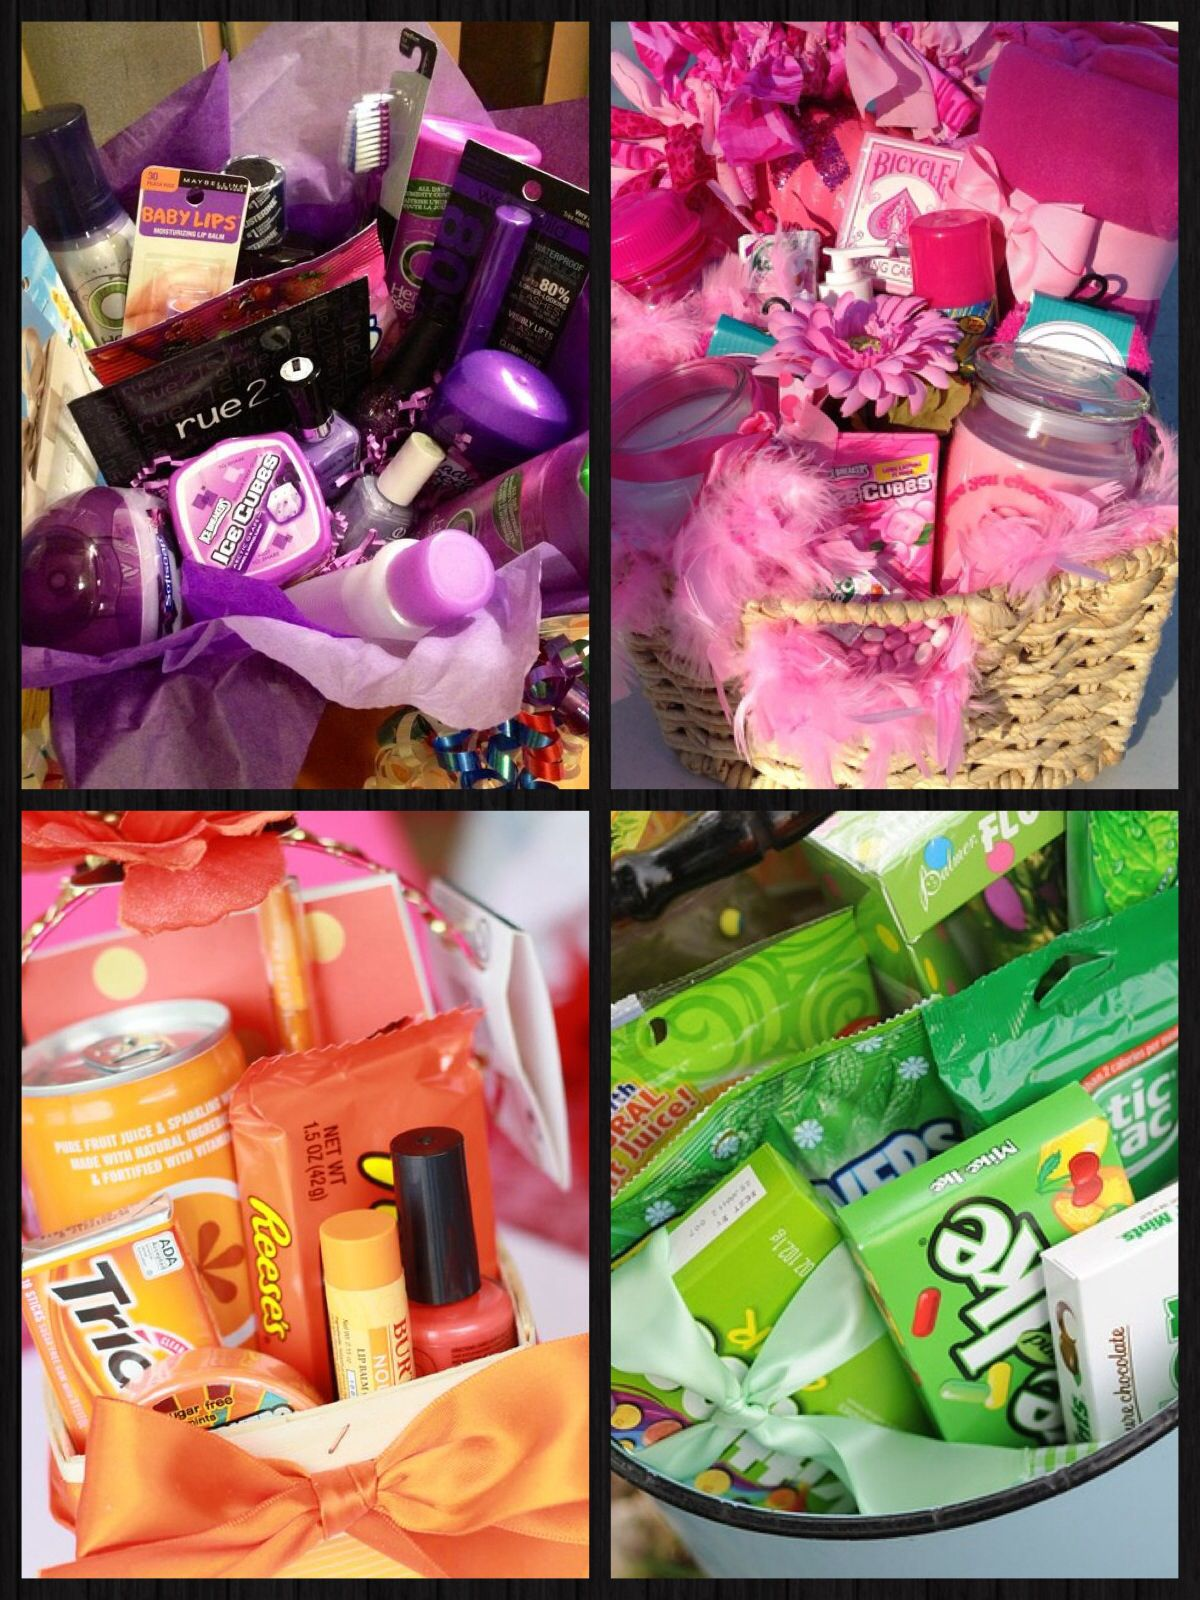 Favorite color themed gift baskets what to get me for my bday favorite color themed gift baskets what to get me for my bday next week negle Images